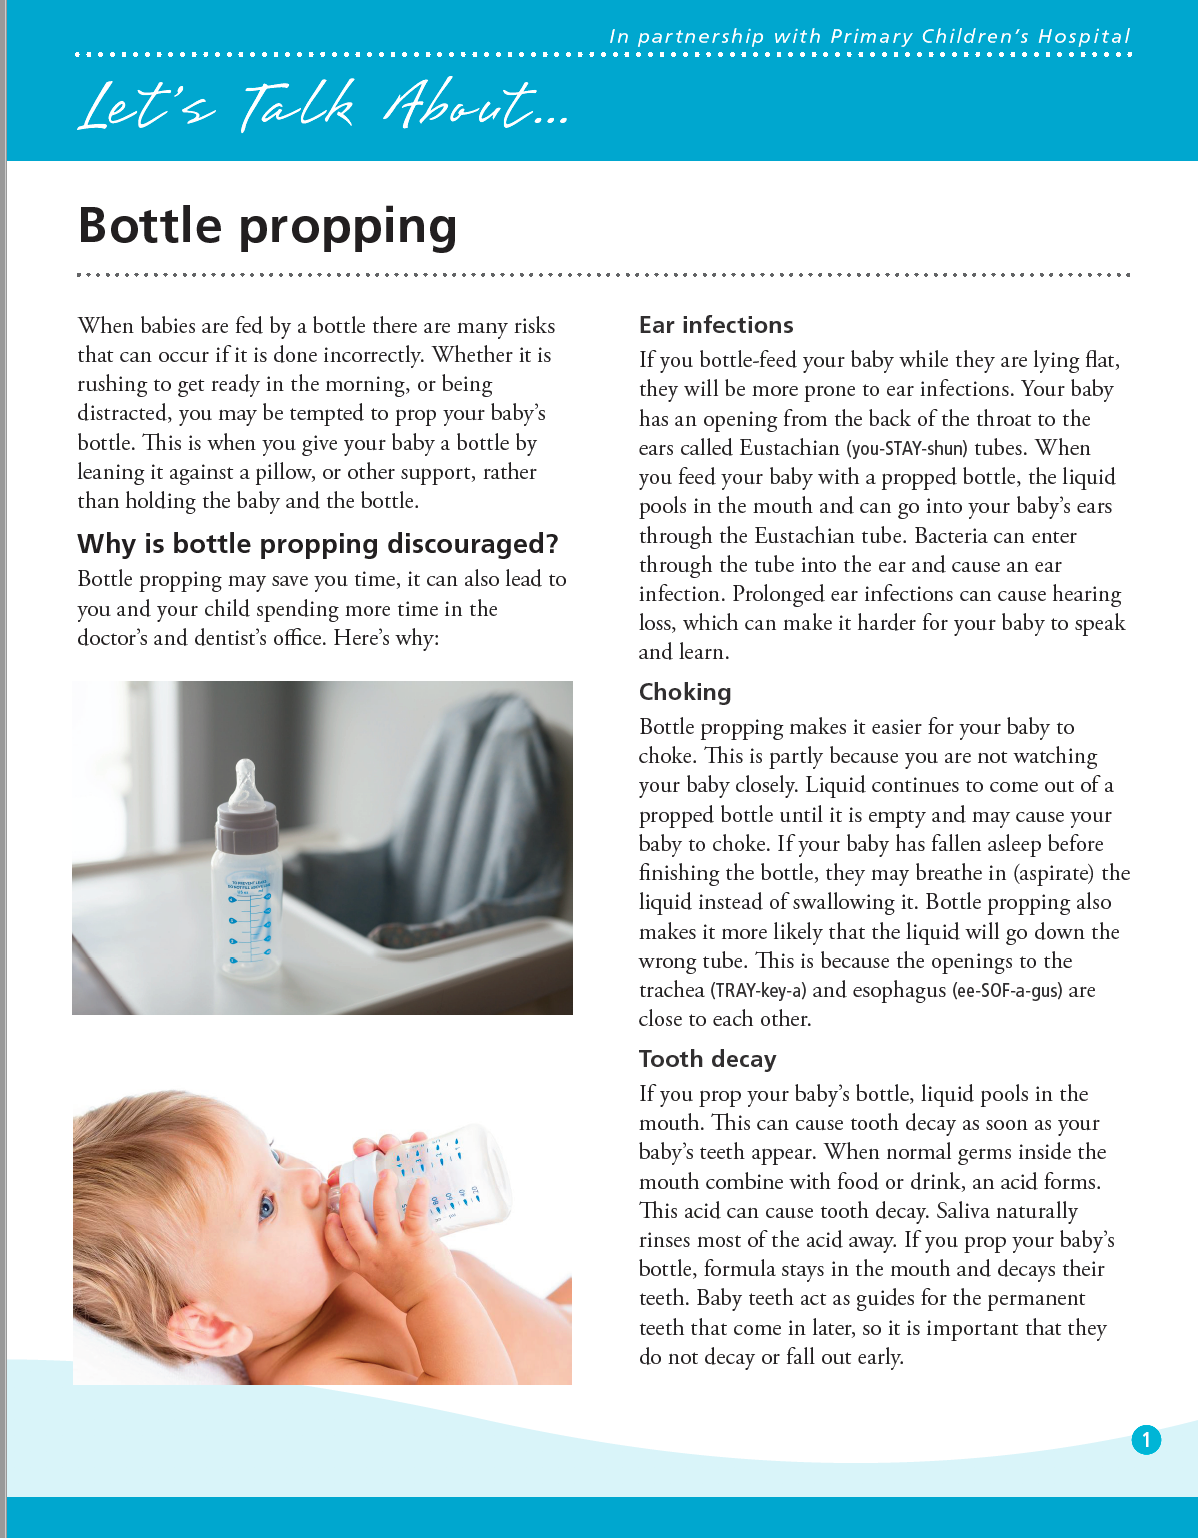 Let's talk about bottle propping